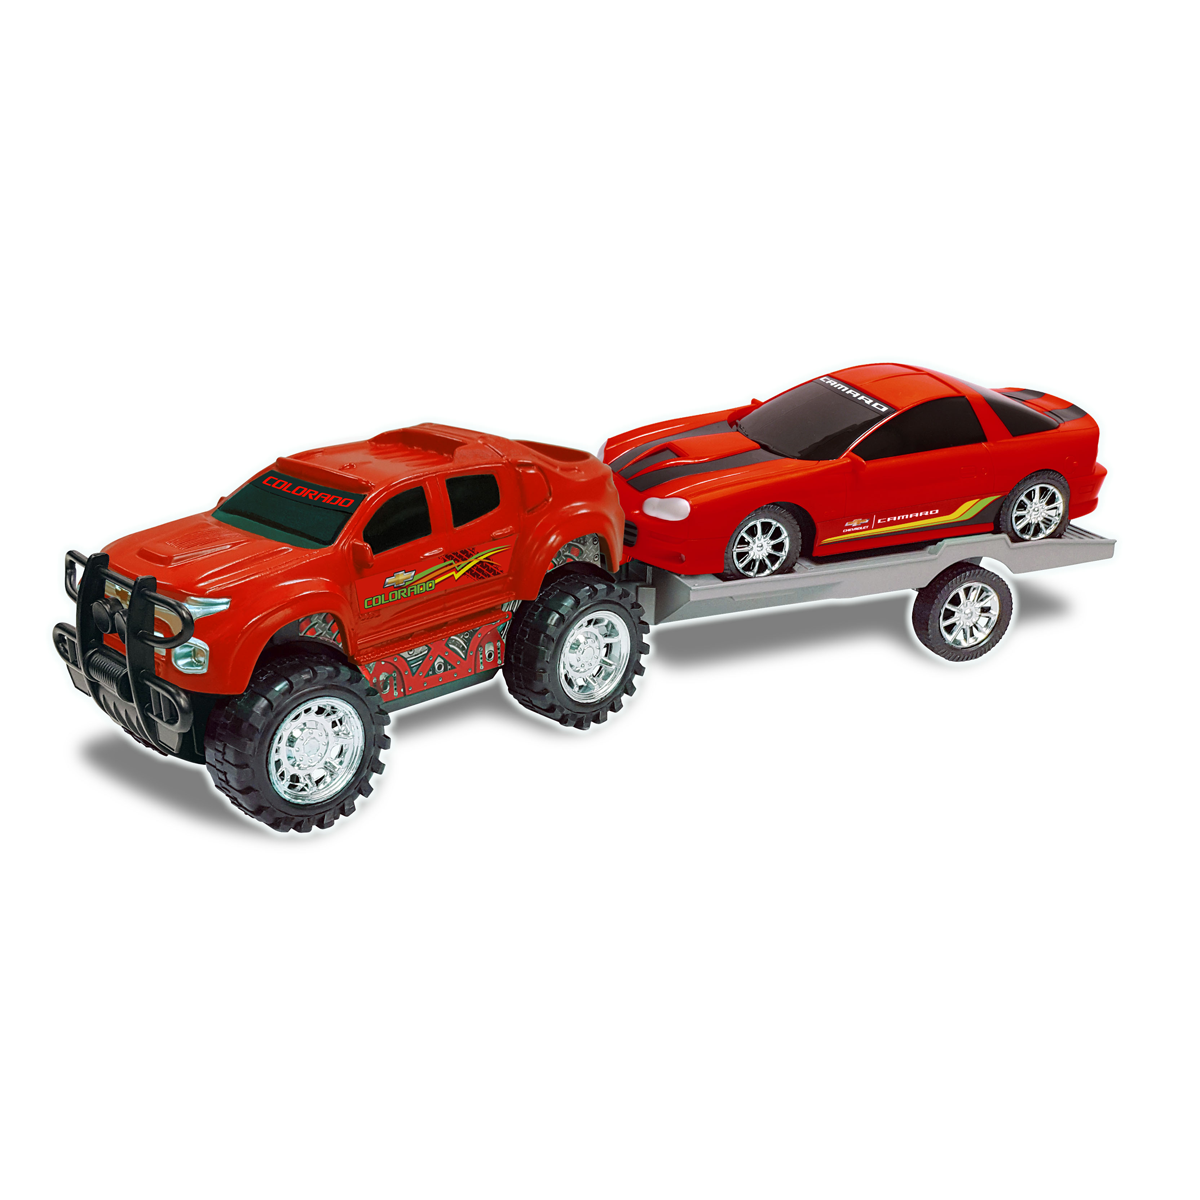 Truck and Trailer - Red from Early Learning Center